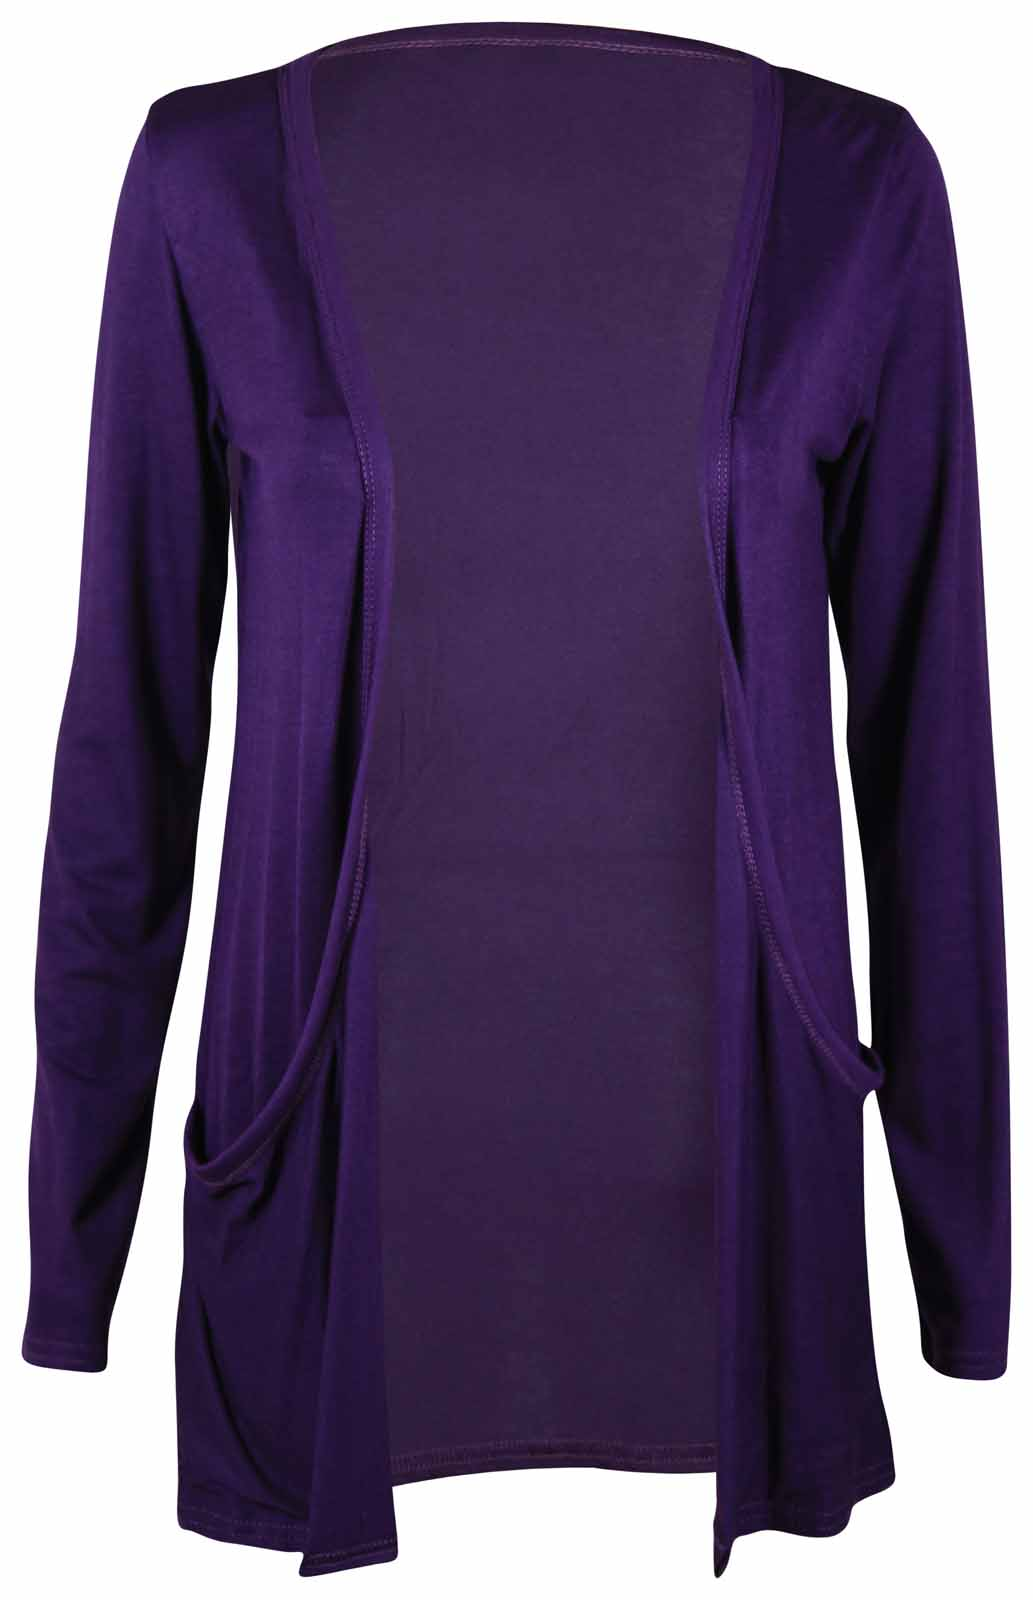 WOMENS-NEW-LONG-SLEEVE-STRETCH-CARDIGAN-LADIES-FOLDED-POCKET-OPEN-TOP-SIZE-16-22